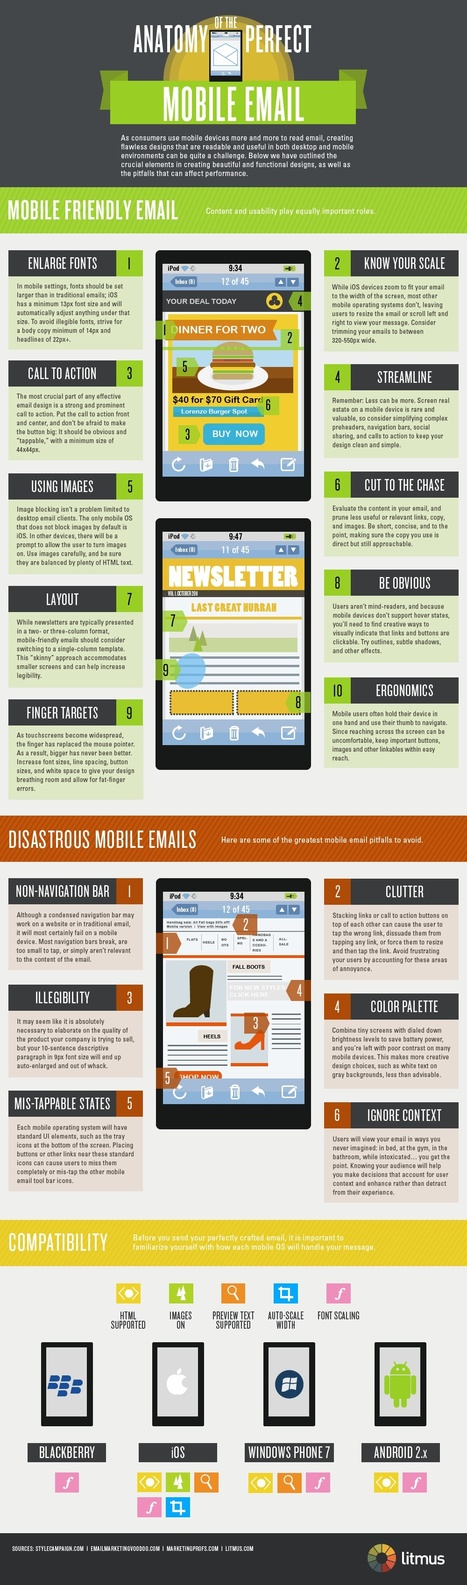 Infographic: Anatomy of the Perfect Mobile Email | Online tips & social media nieuws | Scoop.it